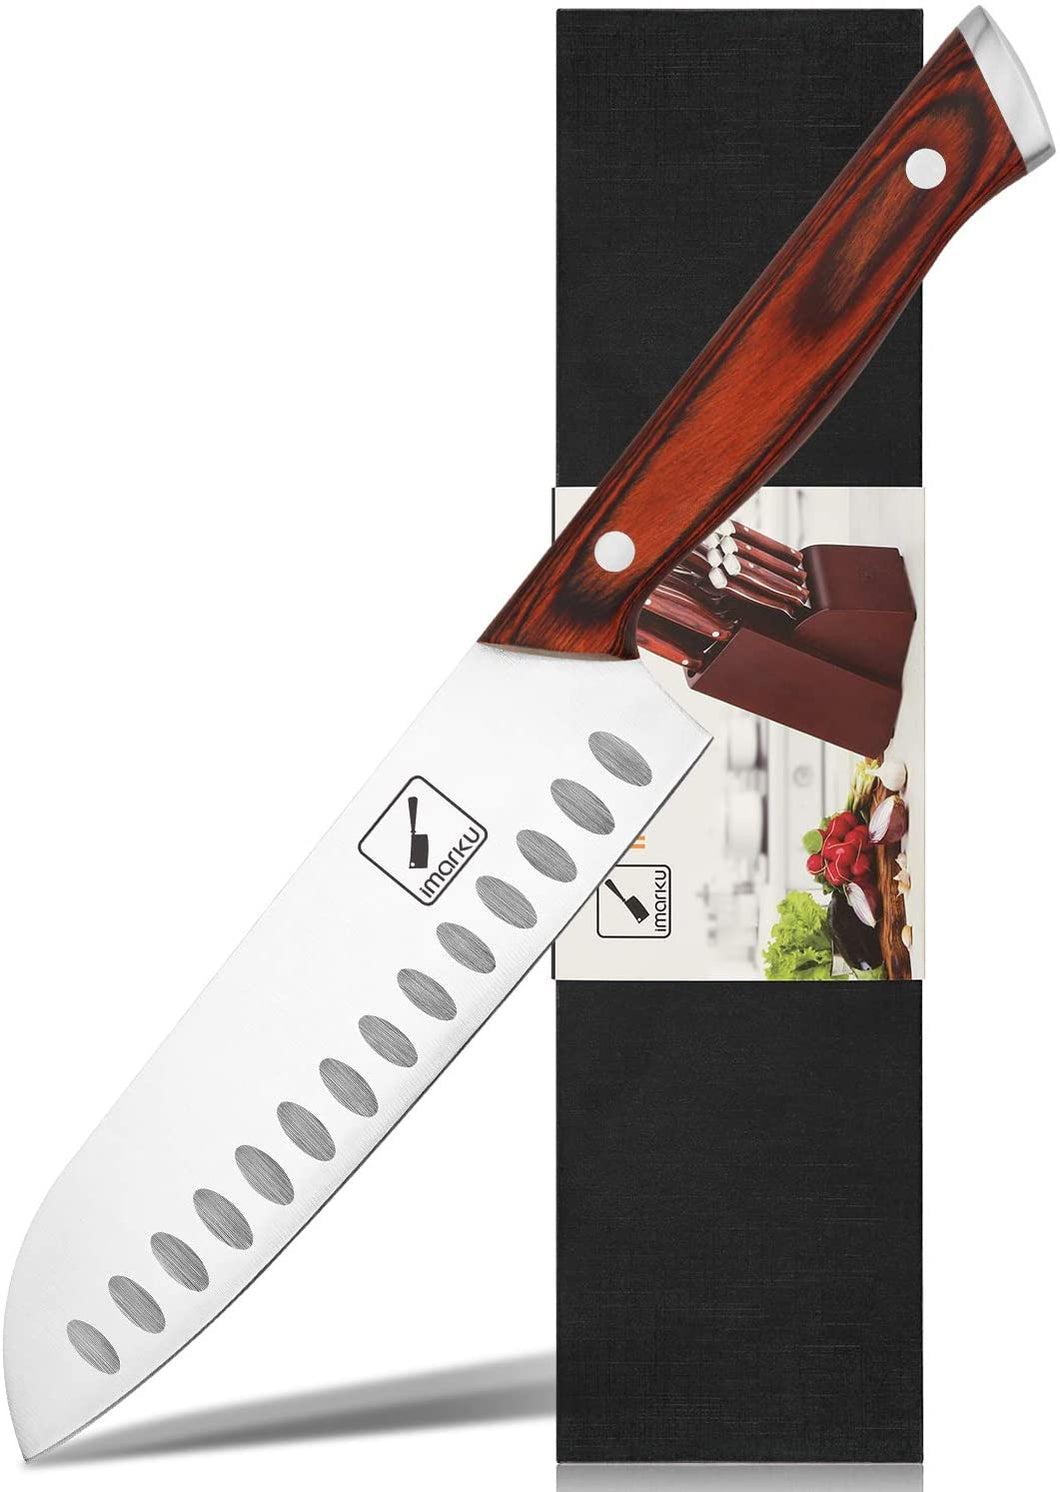 imarku 7-Inch Kitchen Santoku Knife